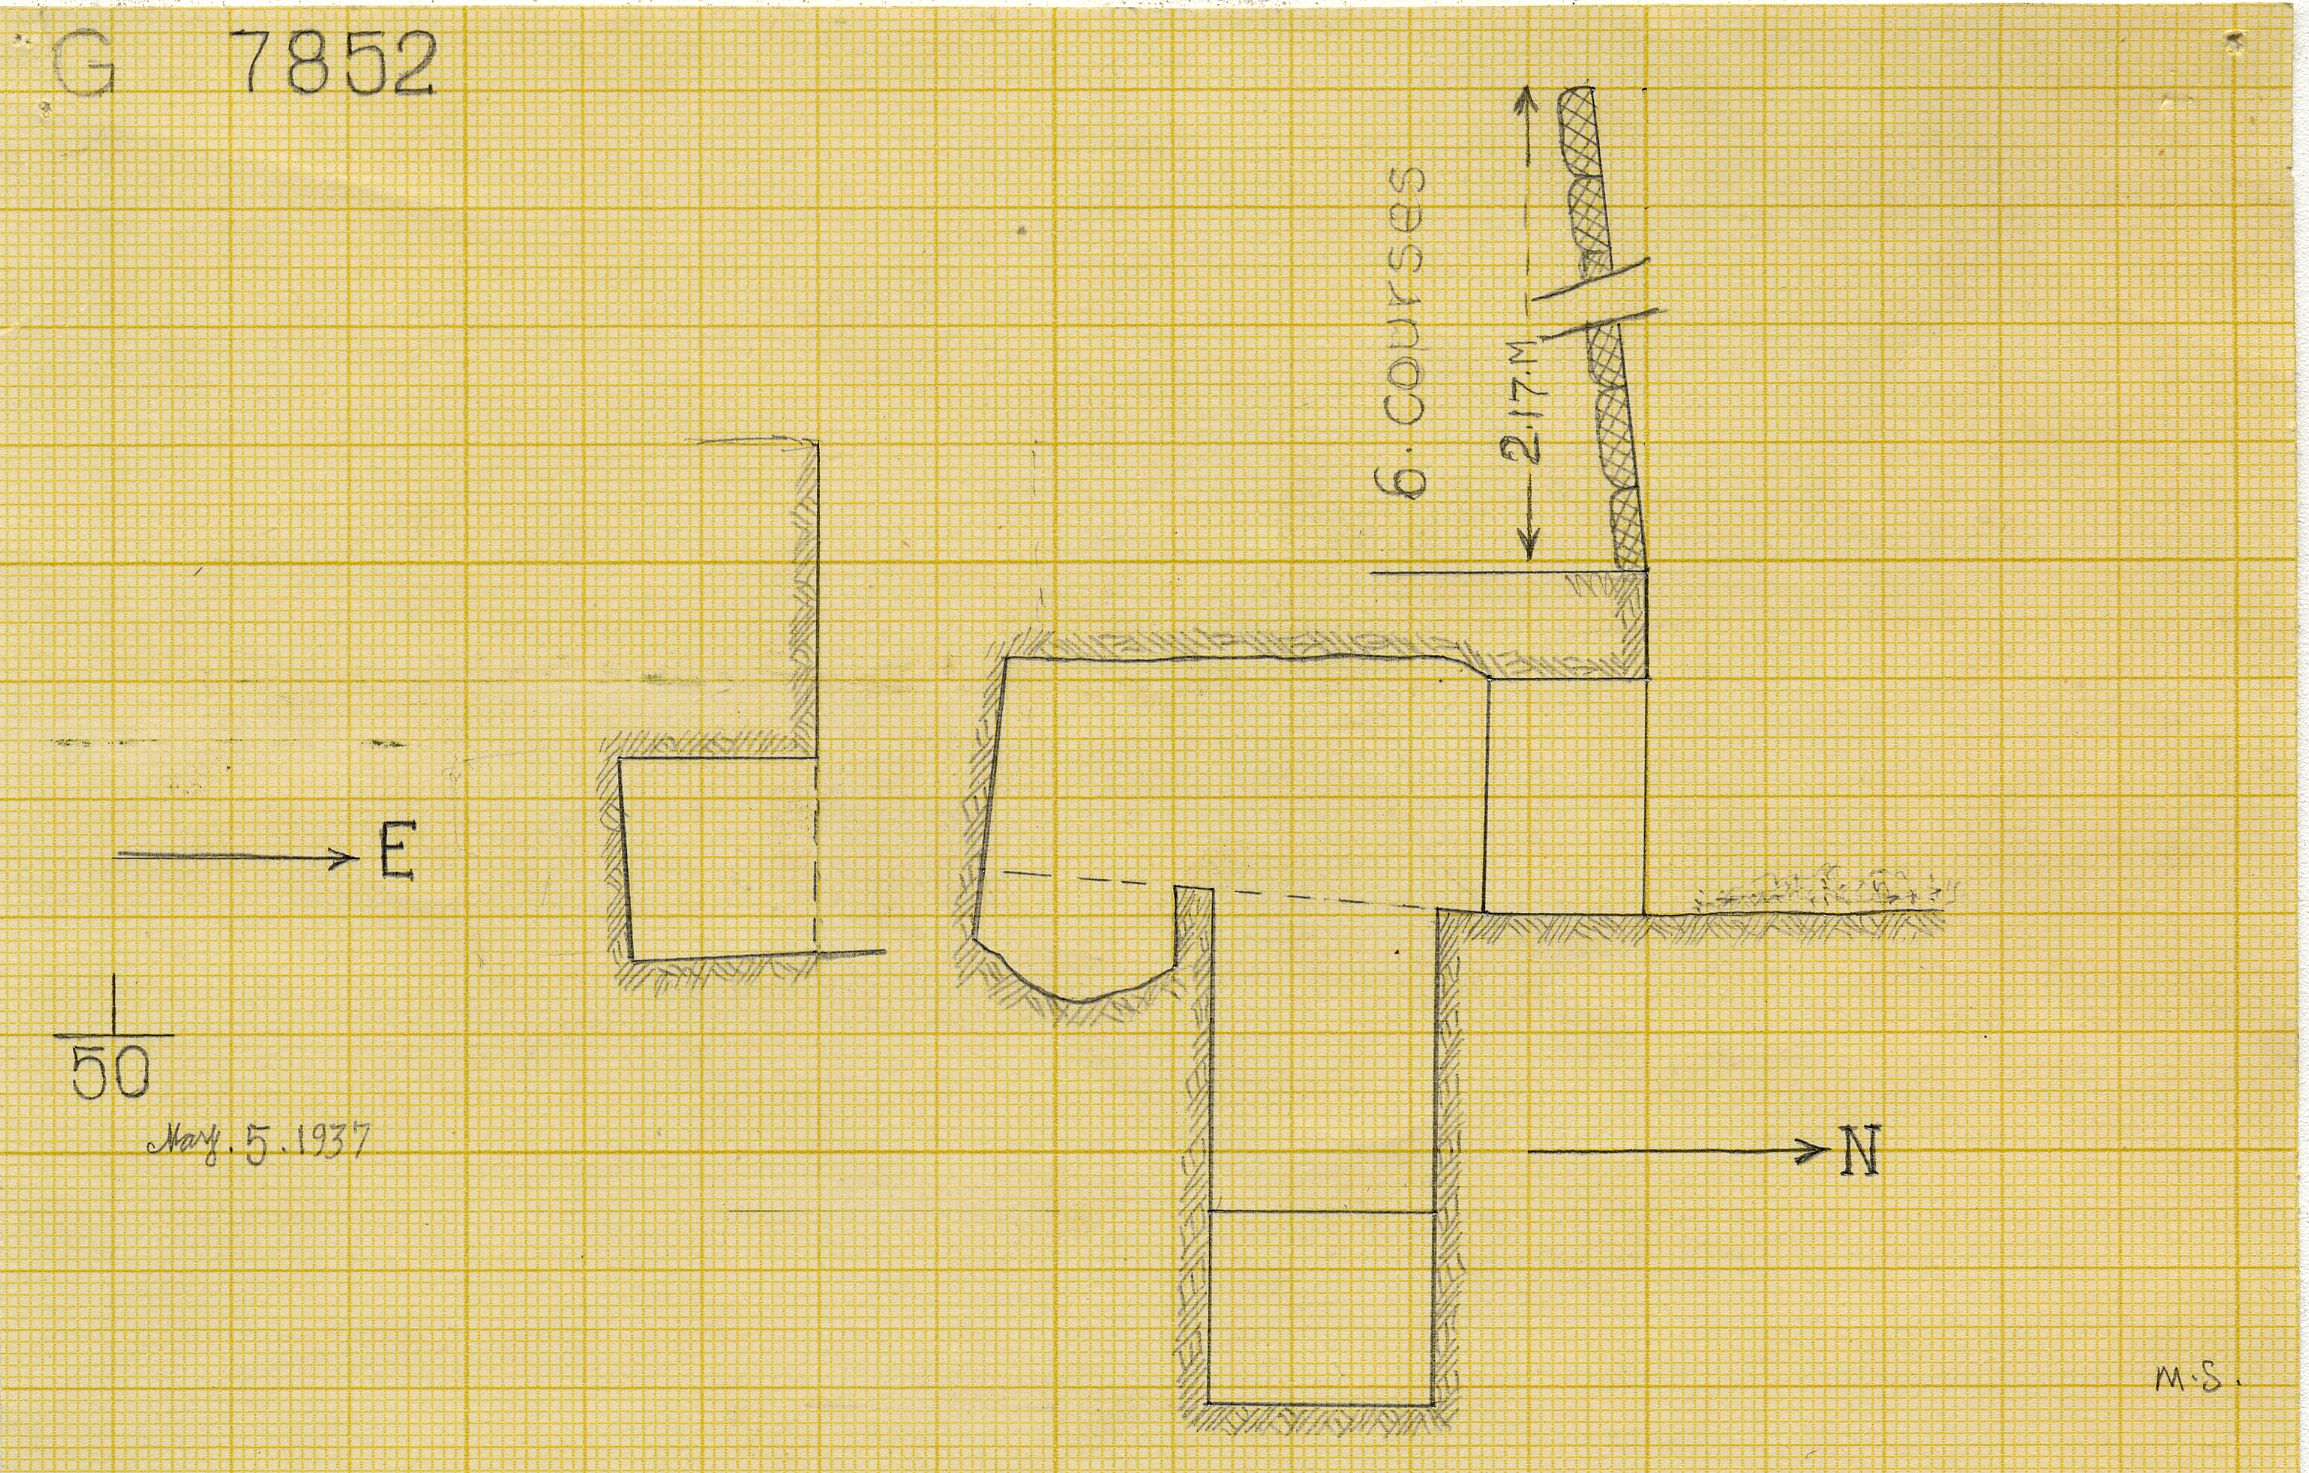 Maps and plans: G 7852